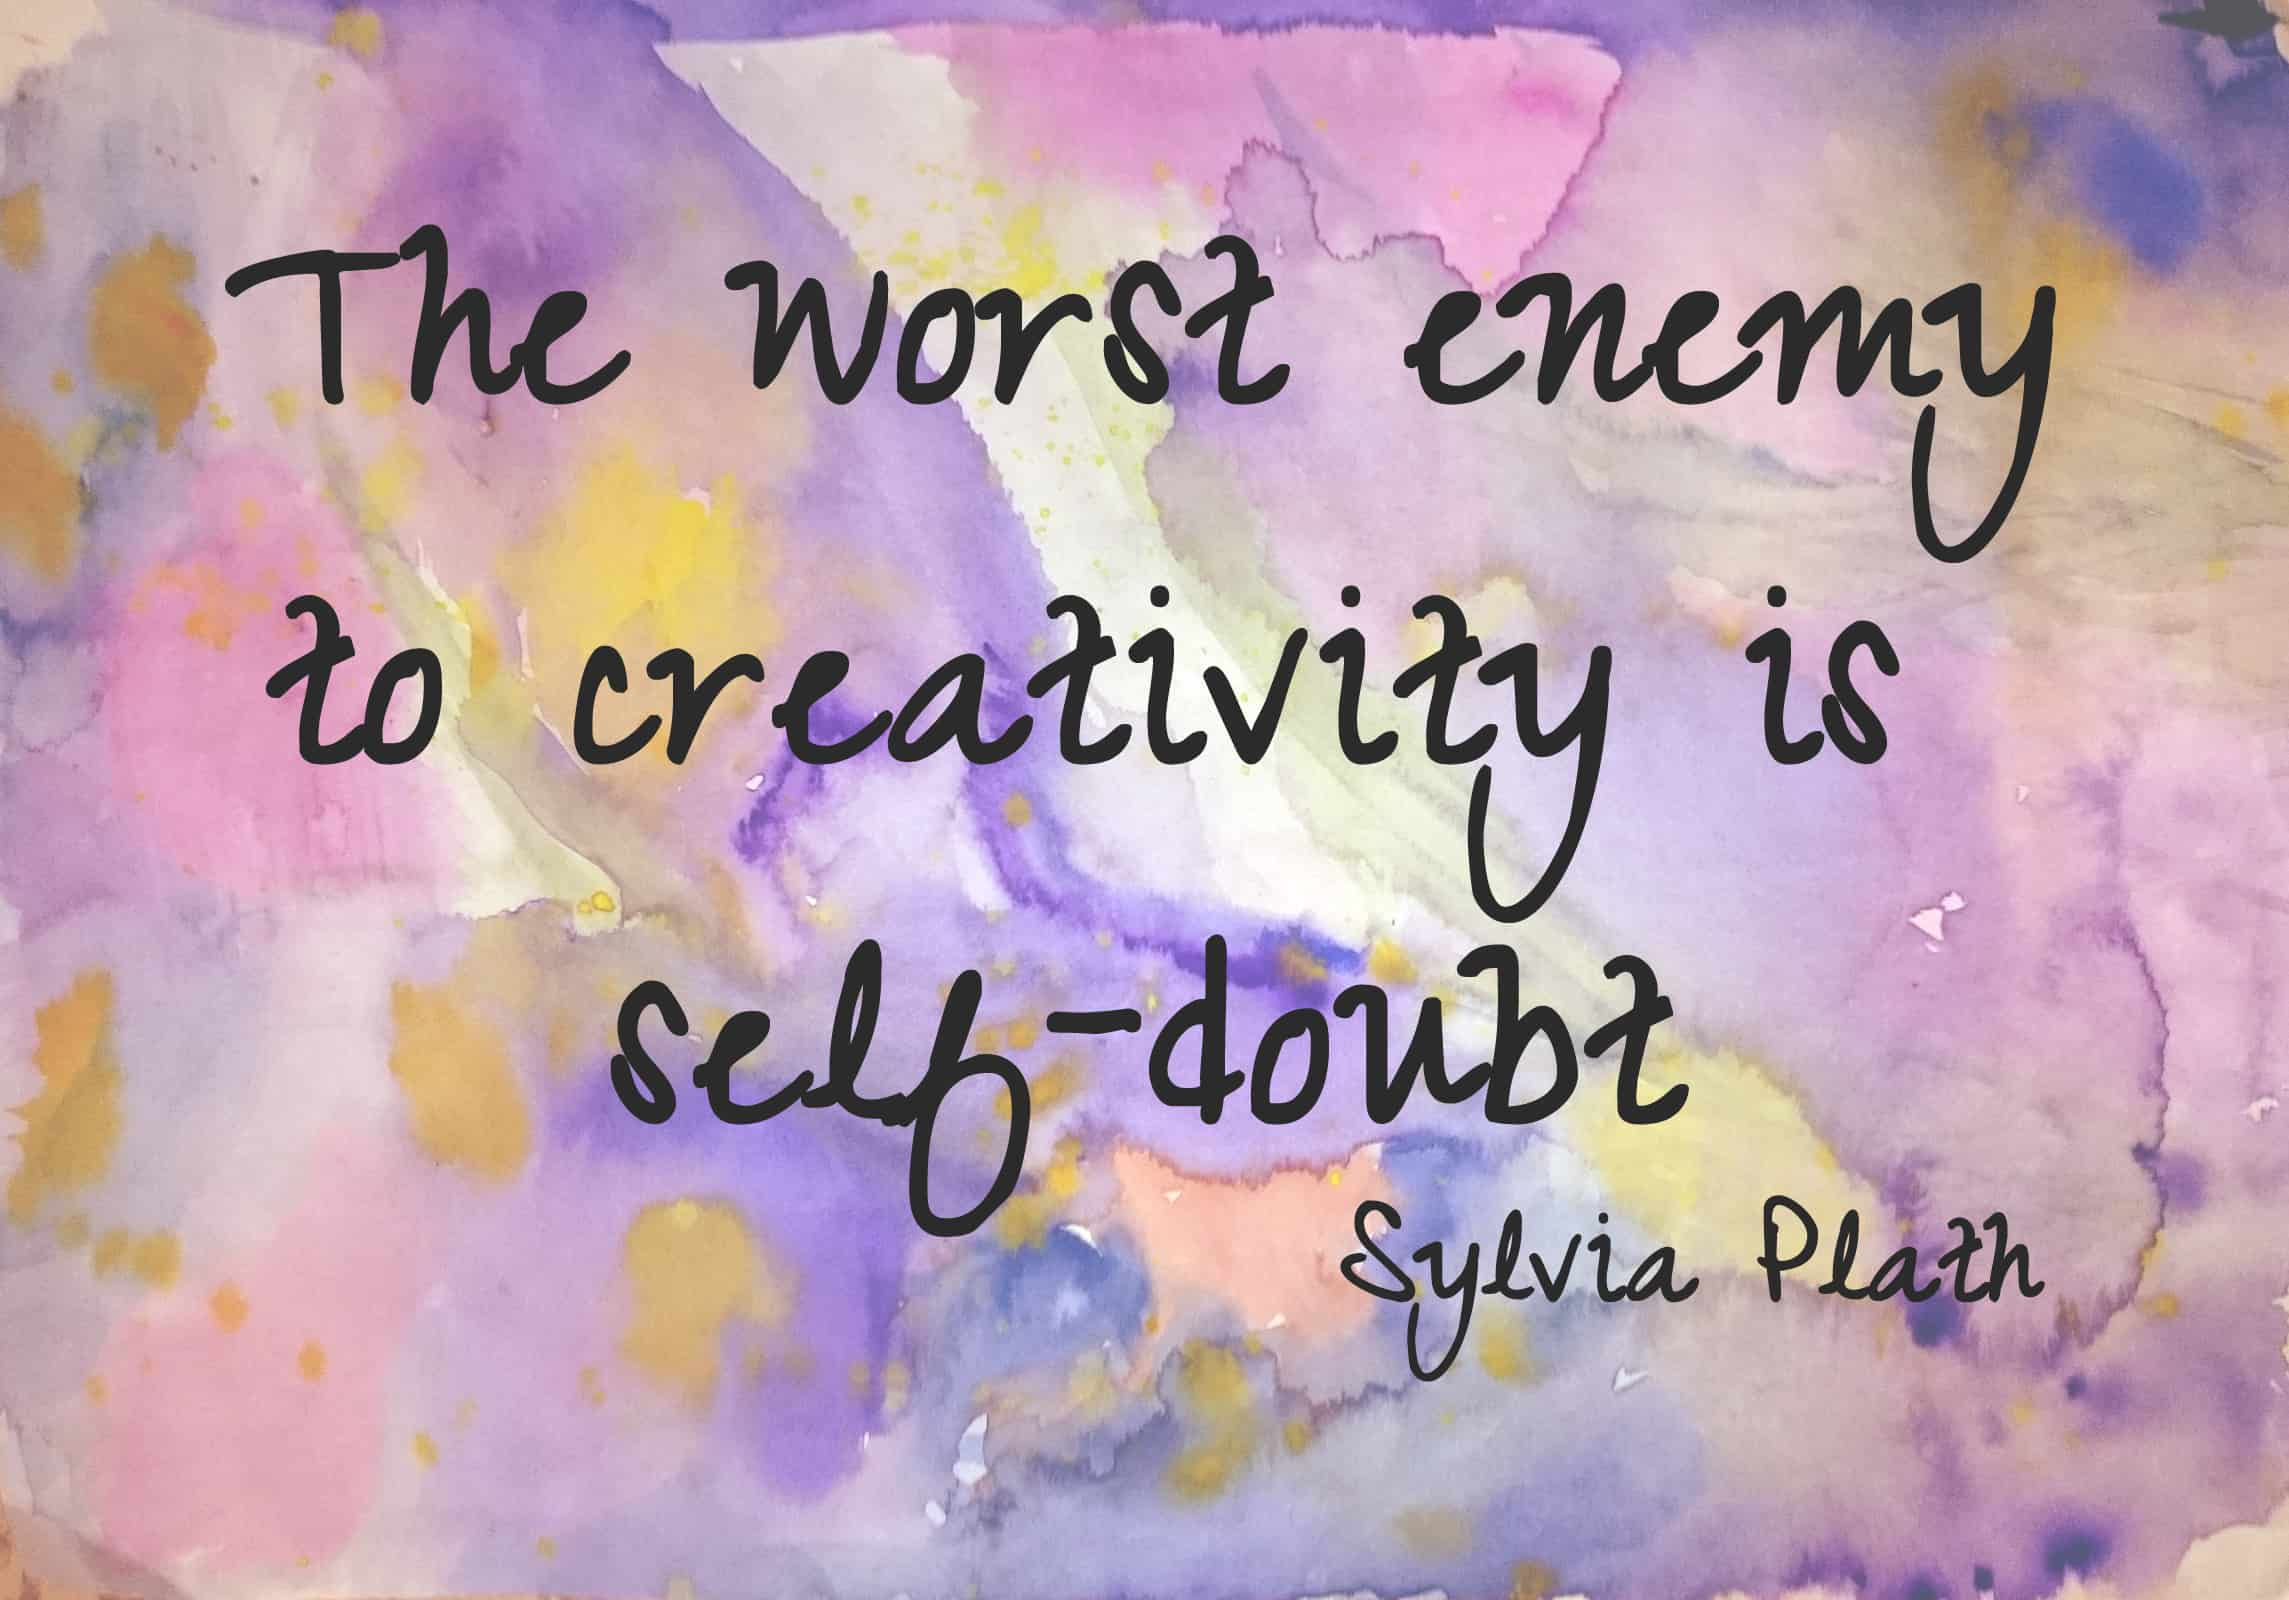 The worst enemy to creativity is self-doubt - Sylvia Plath